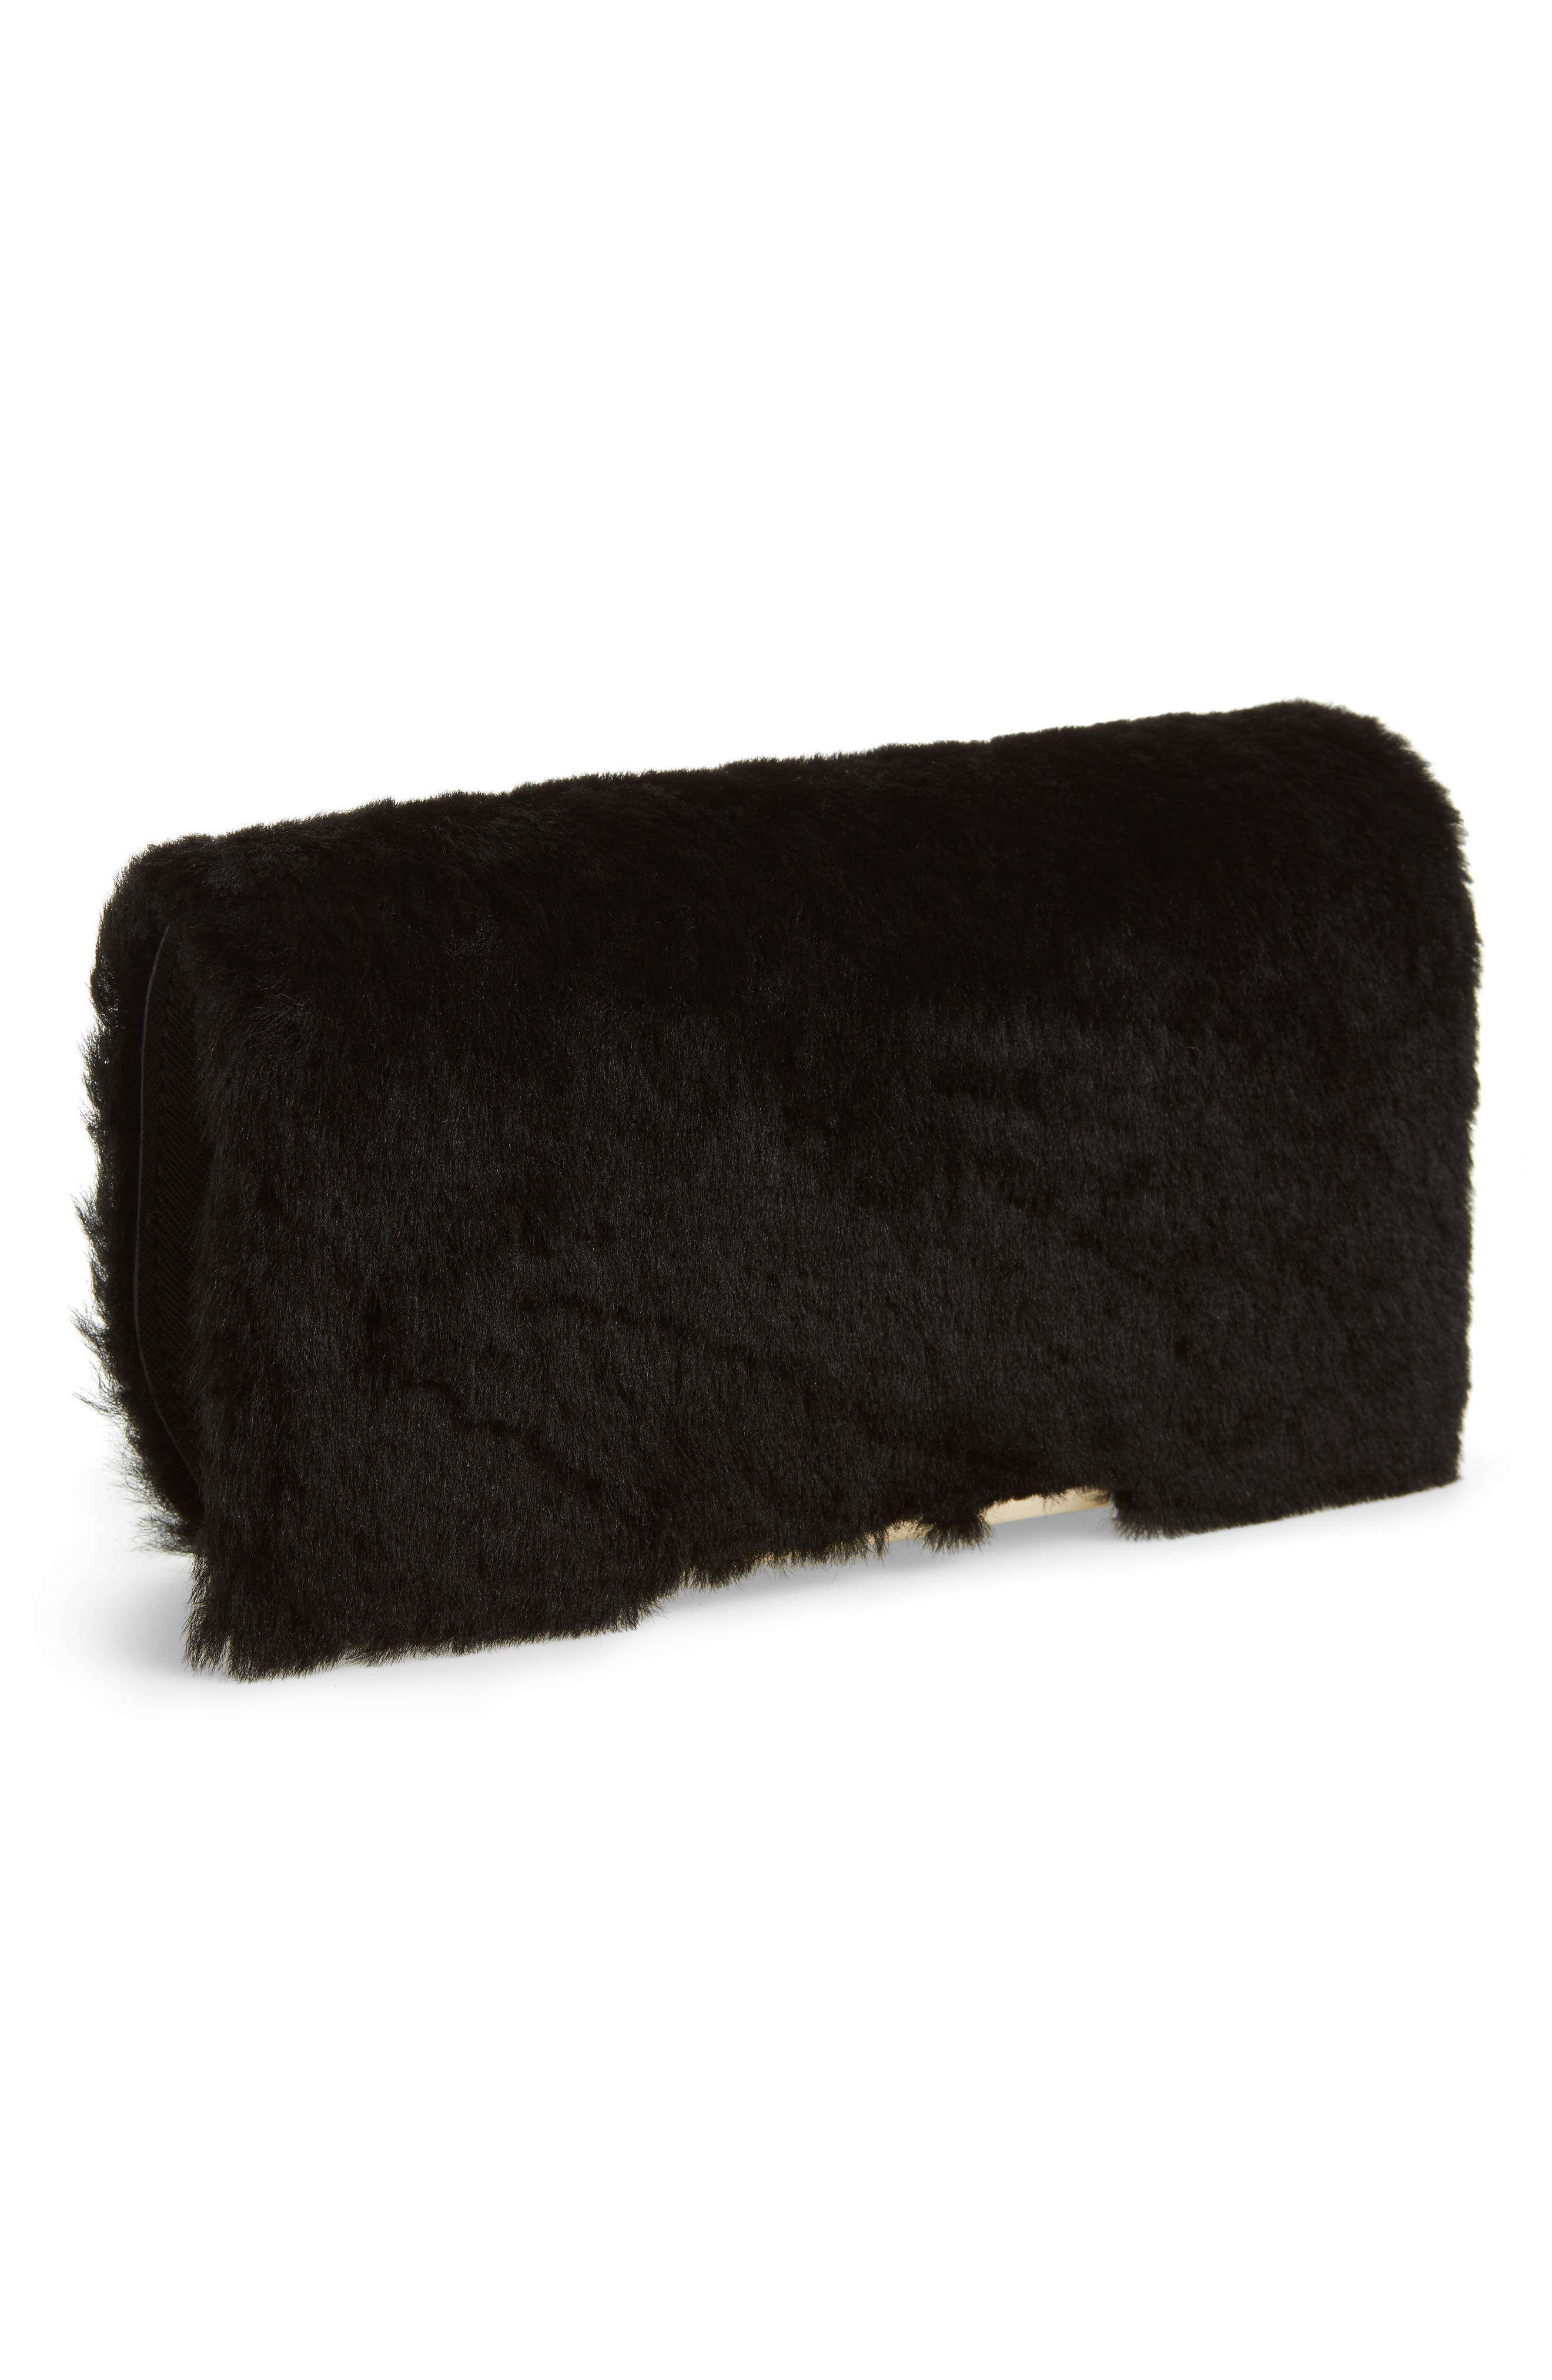 make it mine genuine shearling snap-on accent flap,                         Main,                         color,